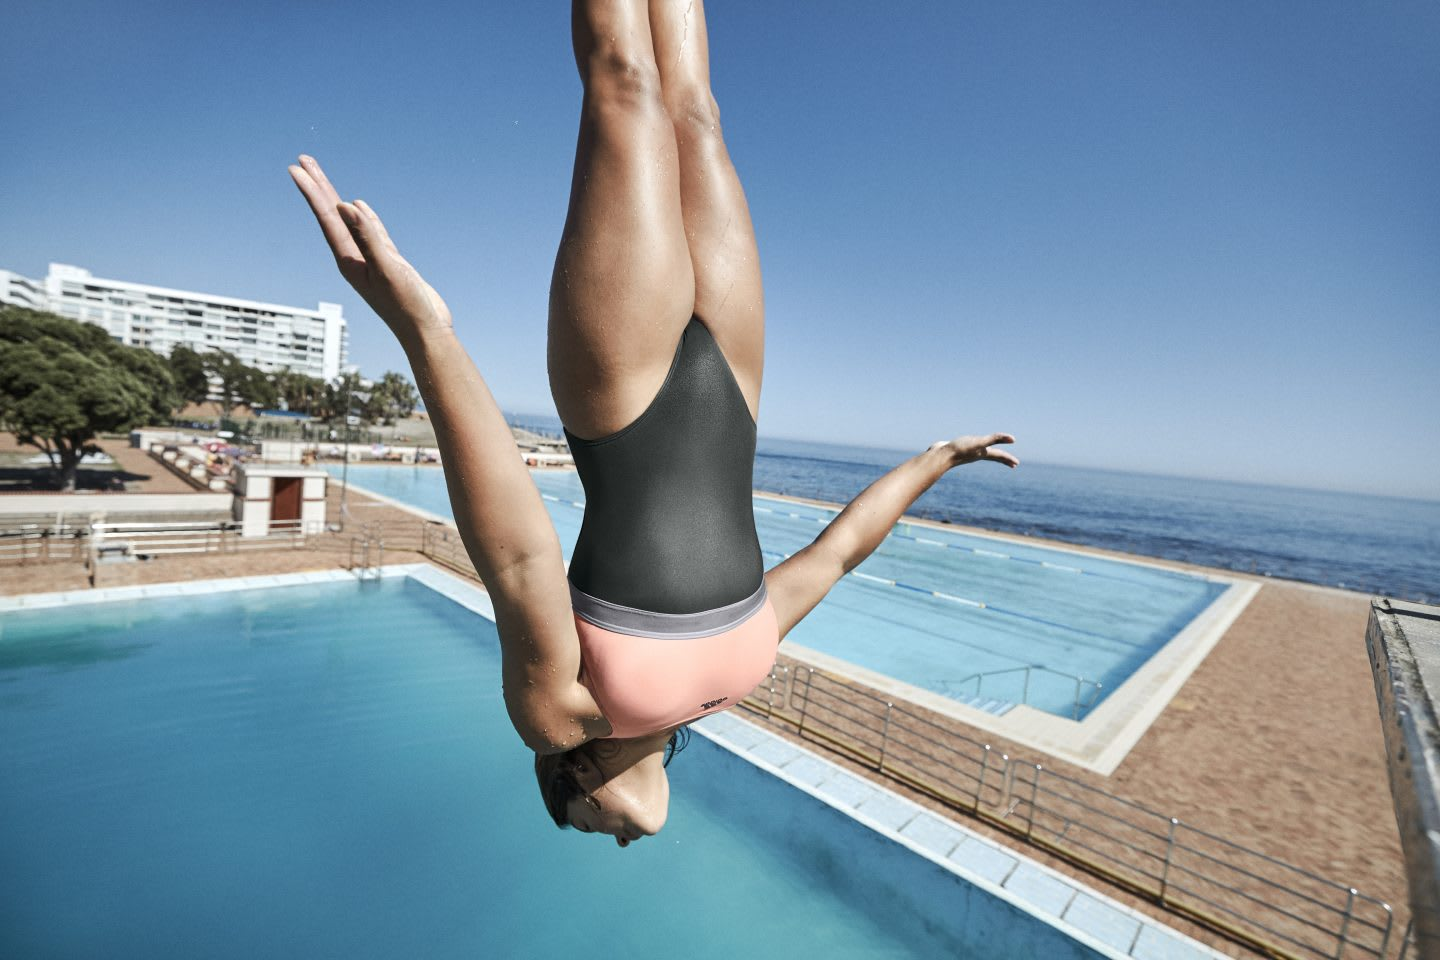 Female diver diving into an outdoor pool headfirst, pool, swimming, swim, sport, fitness